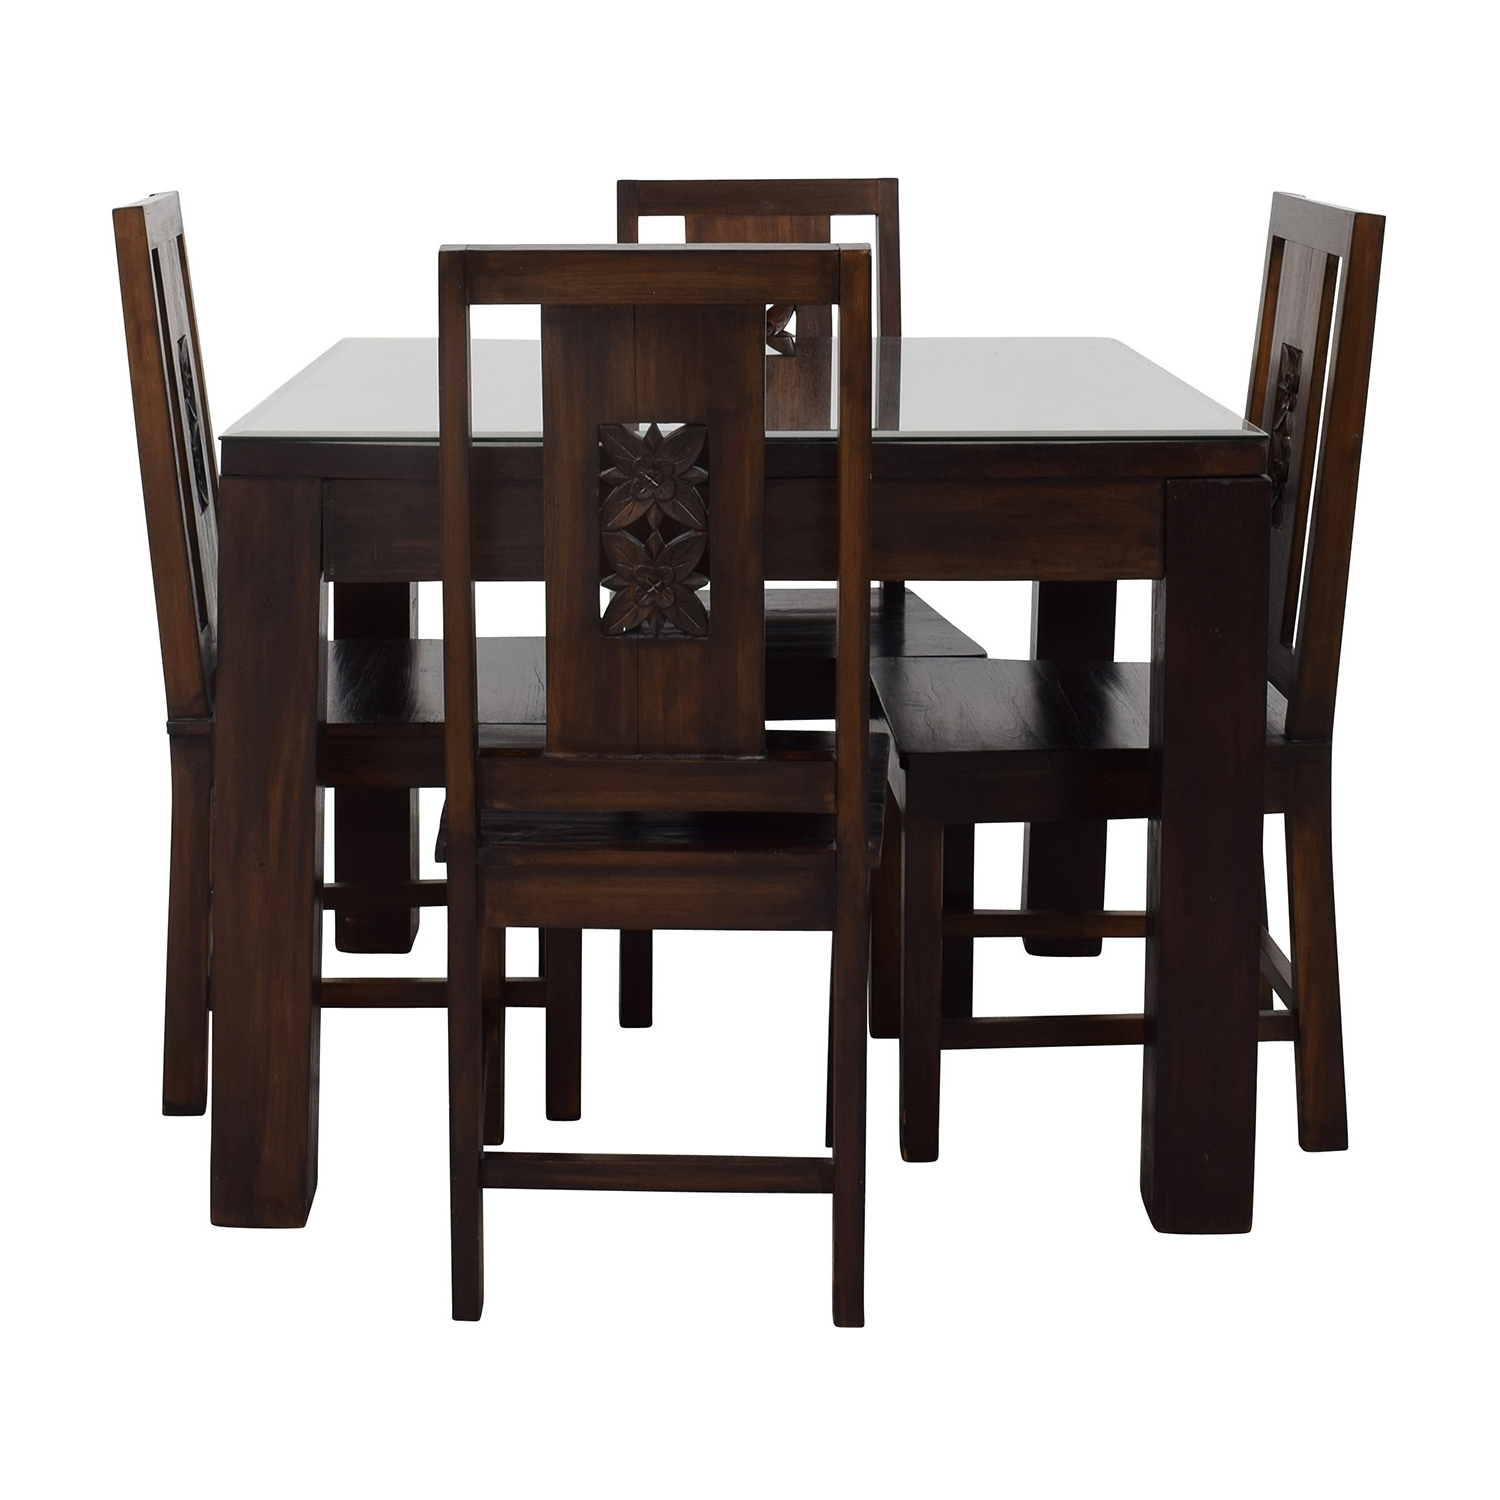 [%90% Off – Balinese Teak Dining Table Set / Tables Regarding Popular Balinese Dining Tables|Balinese Dining Tables With Regard To Best And Newest 90% Off – Balinese Teak Dining Table Set / Tables|Most Current Balinese Dining Tables Within 90% Off – Balinese Teak Dining Table Set / Tables|Favorite 90% Off – Balinese Teak Dining Table Set / Tables Pertaining To Balinese Dining Tables%] (View 5 of 25)